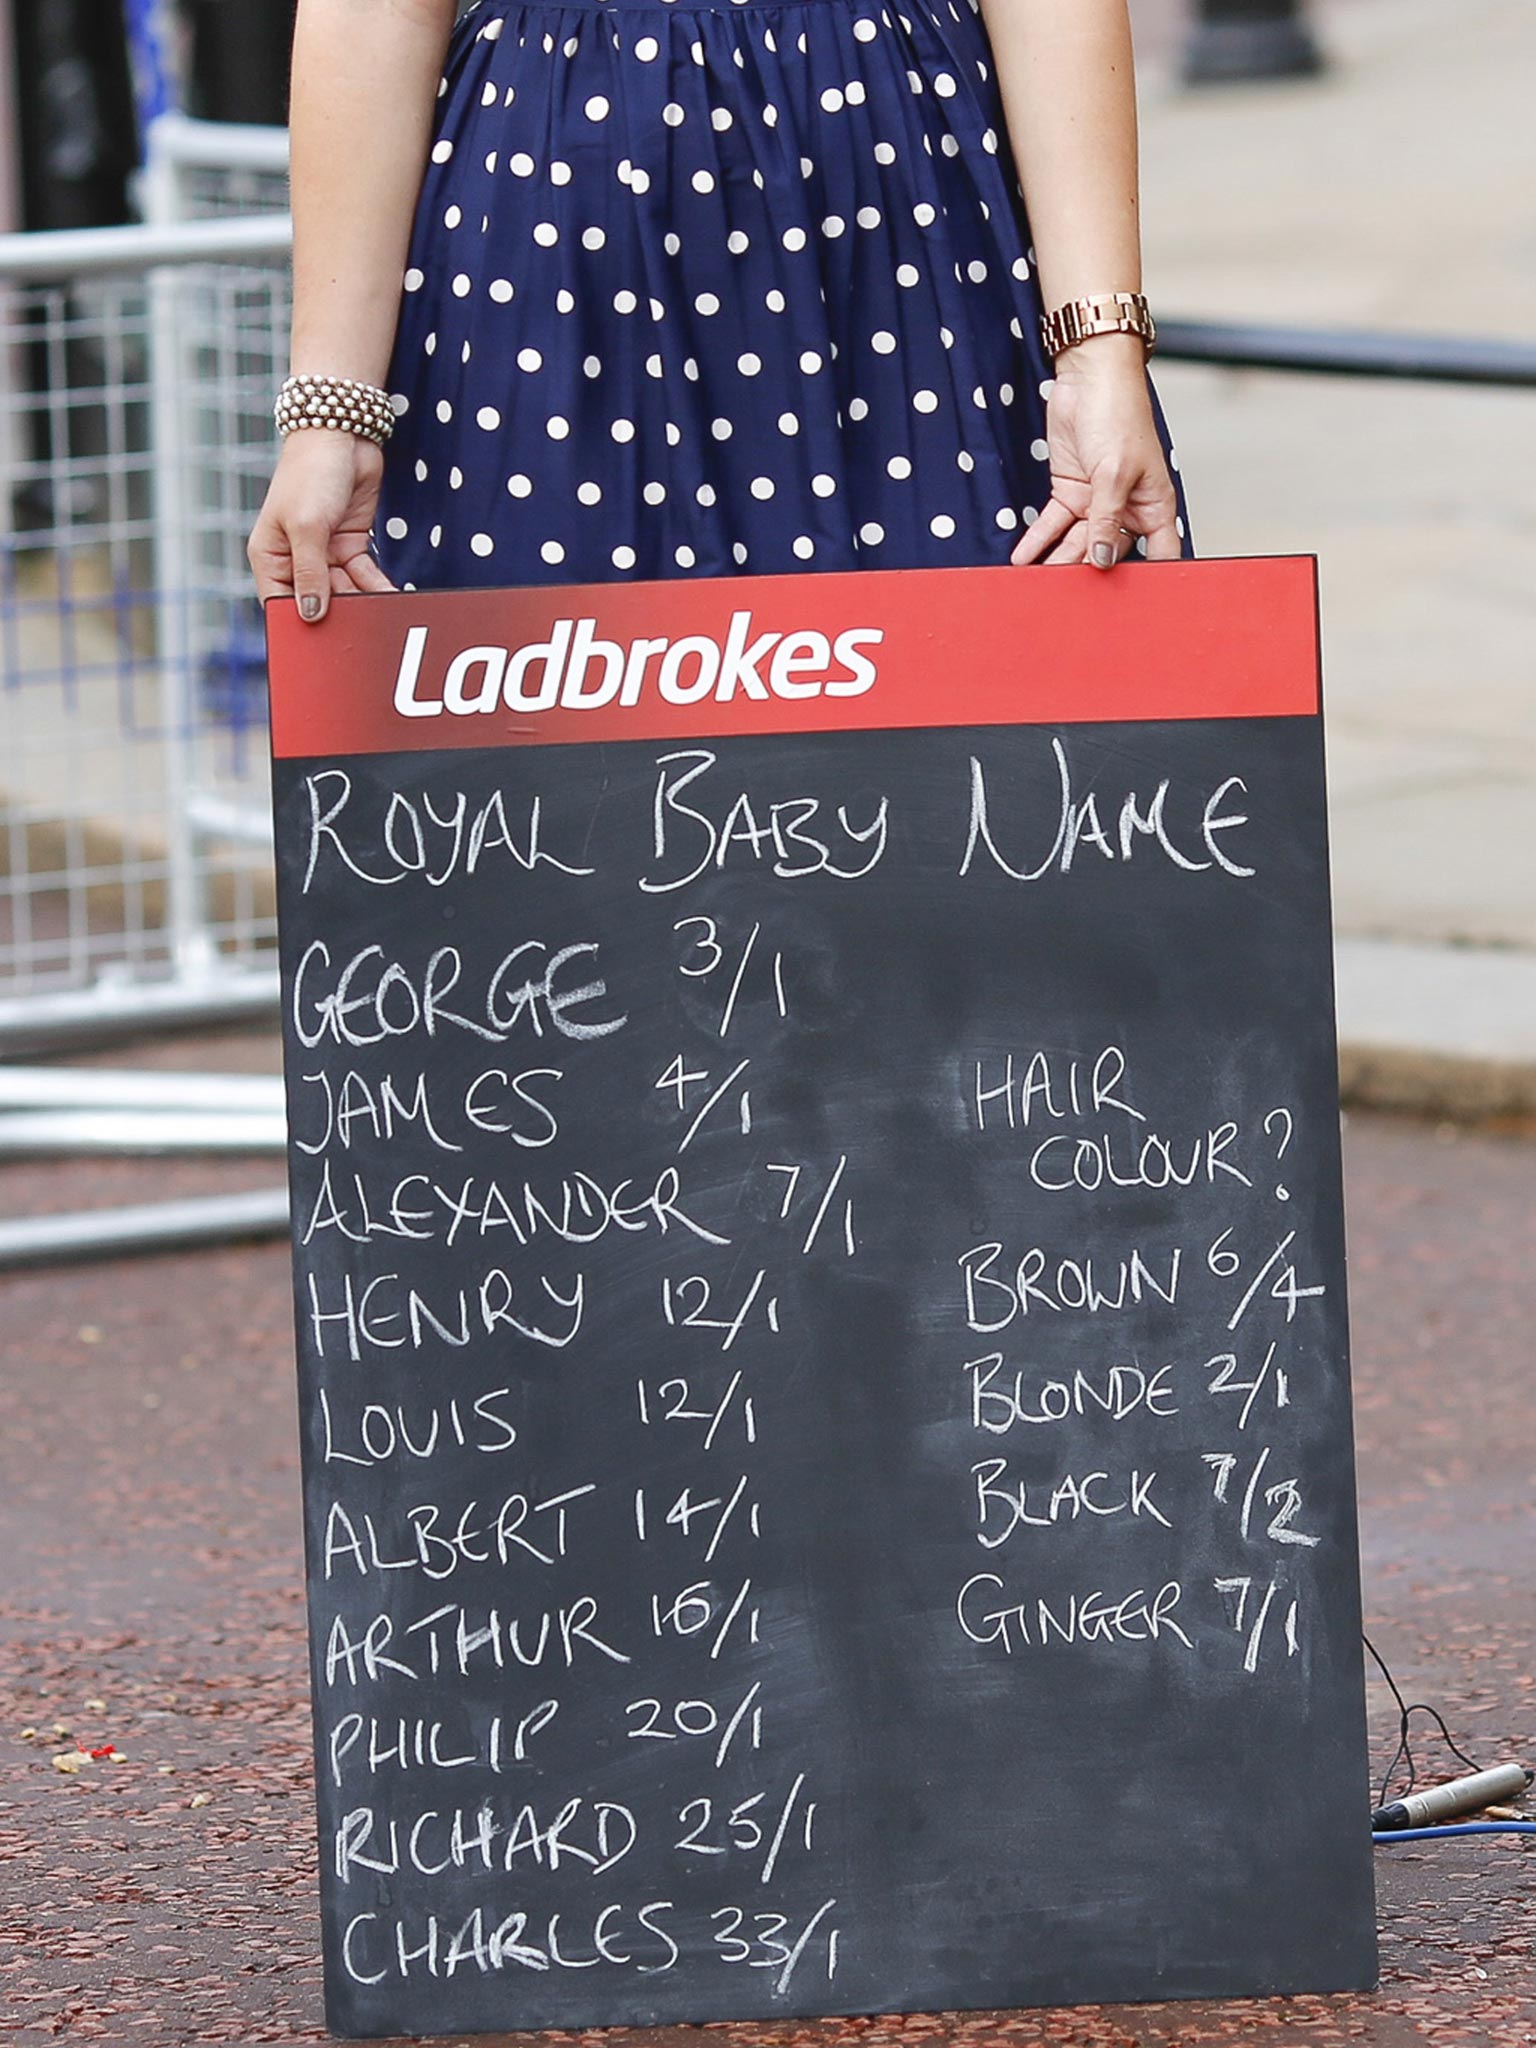 bets on the royal baby name